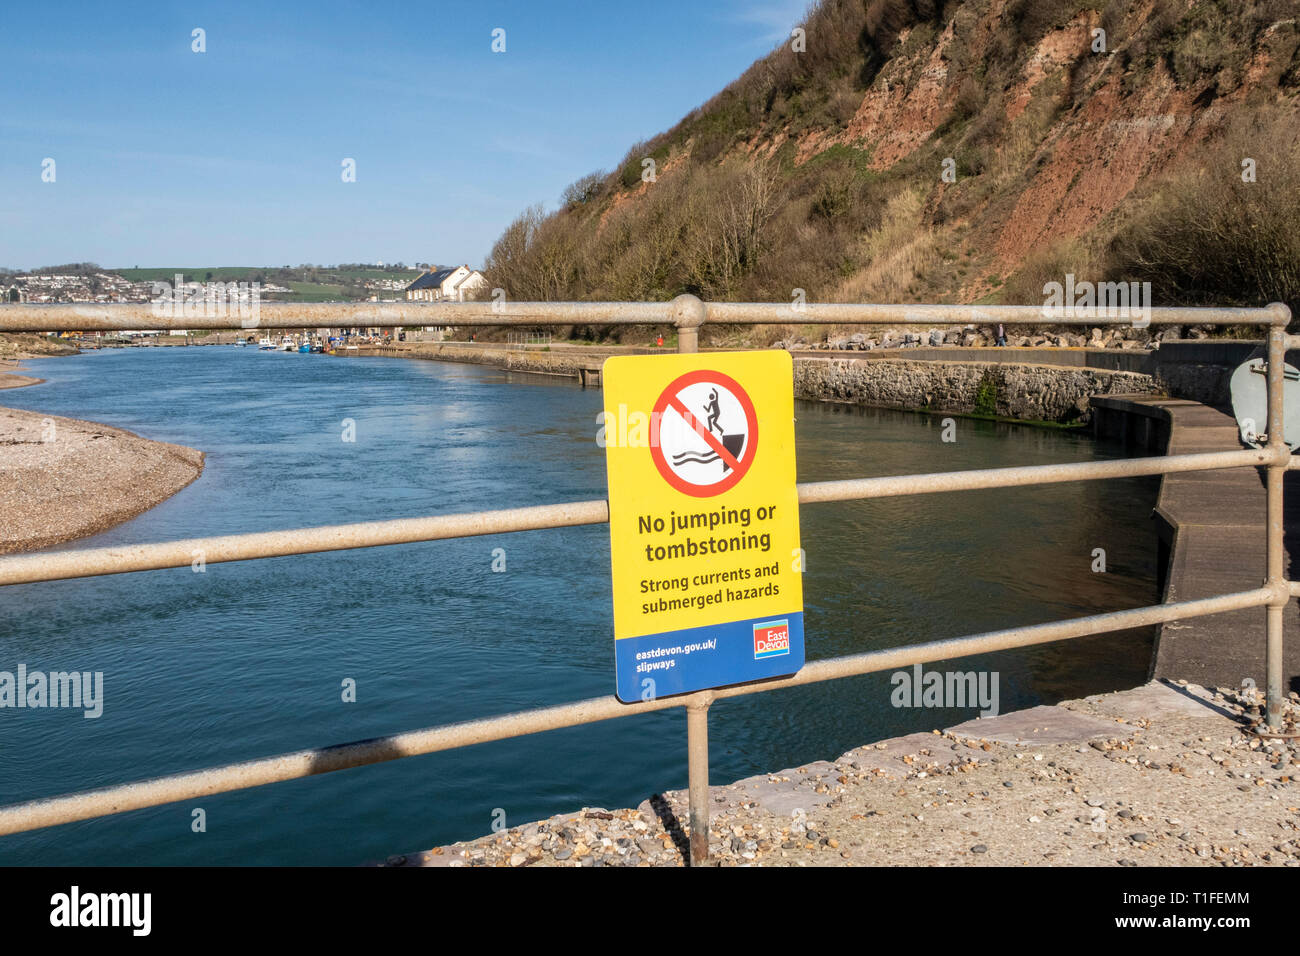 No jumping or tombstoning sign.The river Axe as it reaches the sea between Axmouth and Seaton. Stock Photo